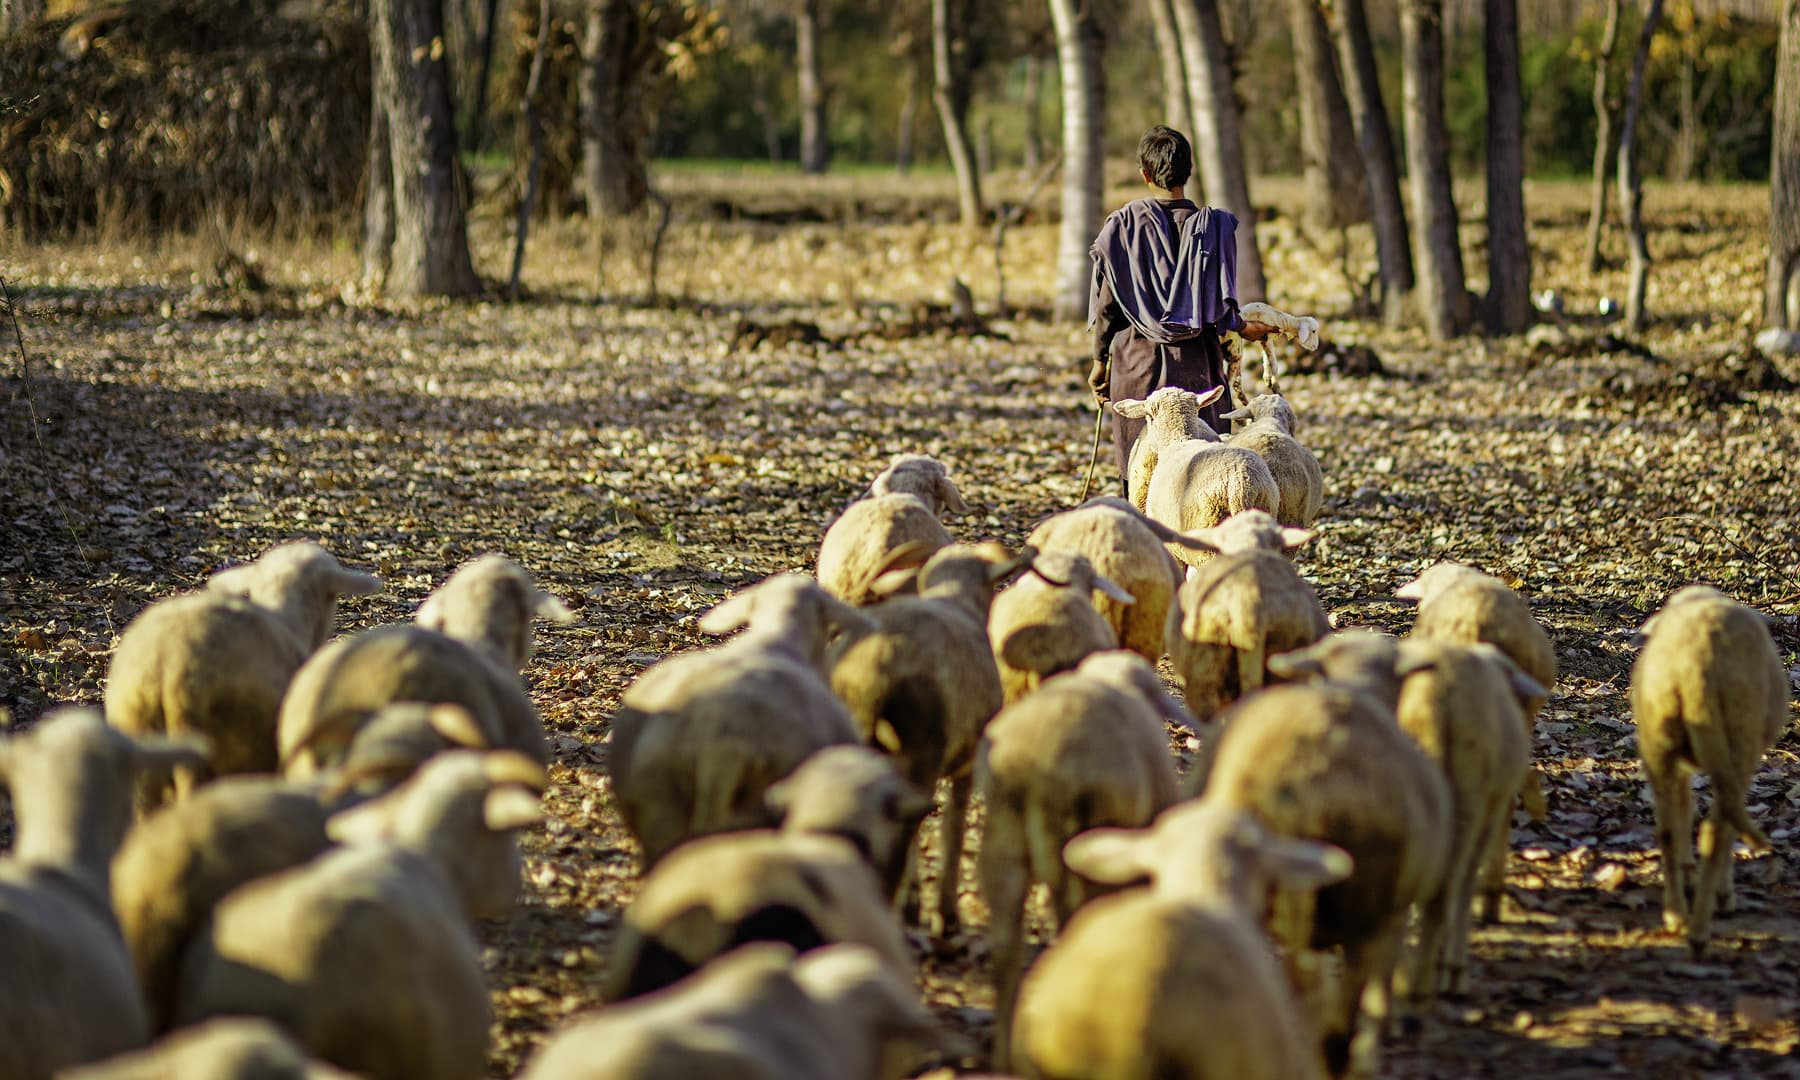 A shepherd boy with his sheep.